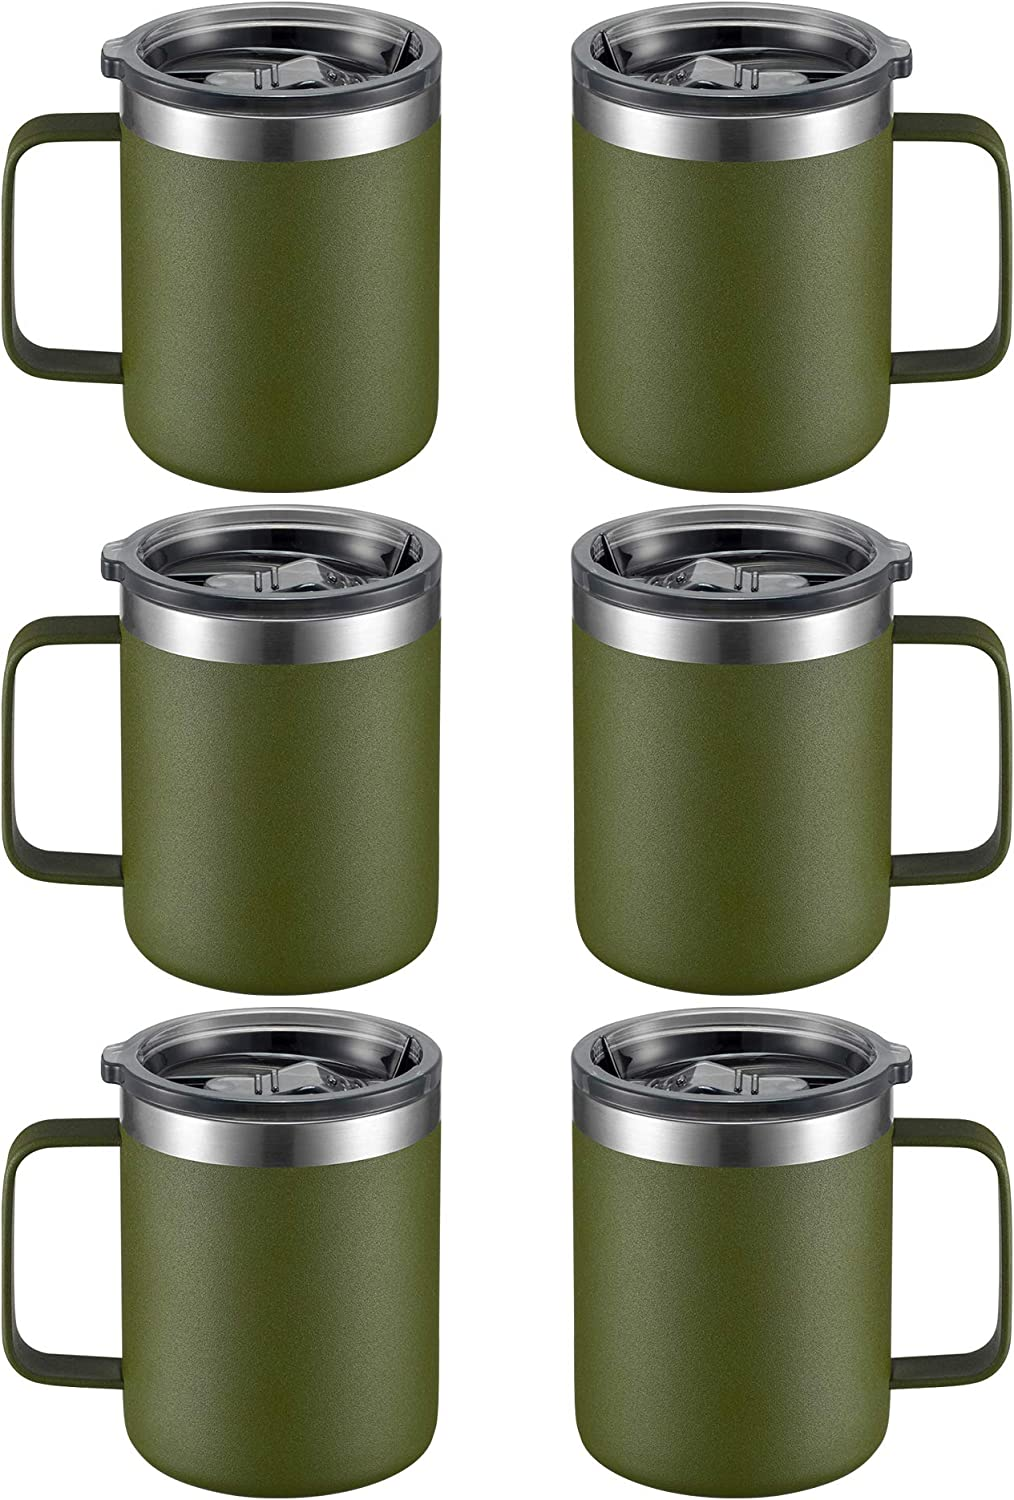 12oz Stainless Steel Limited Special Price Insulated Max 46% OFF Coffee Handle Mug Wa with Double